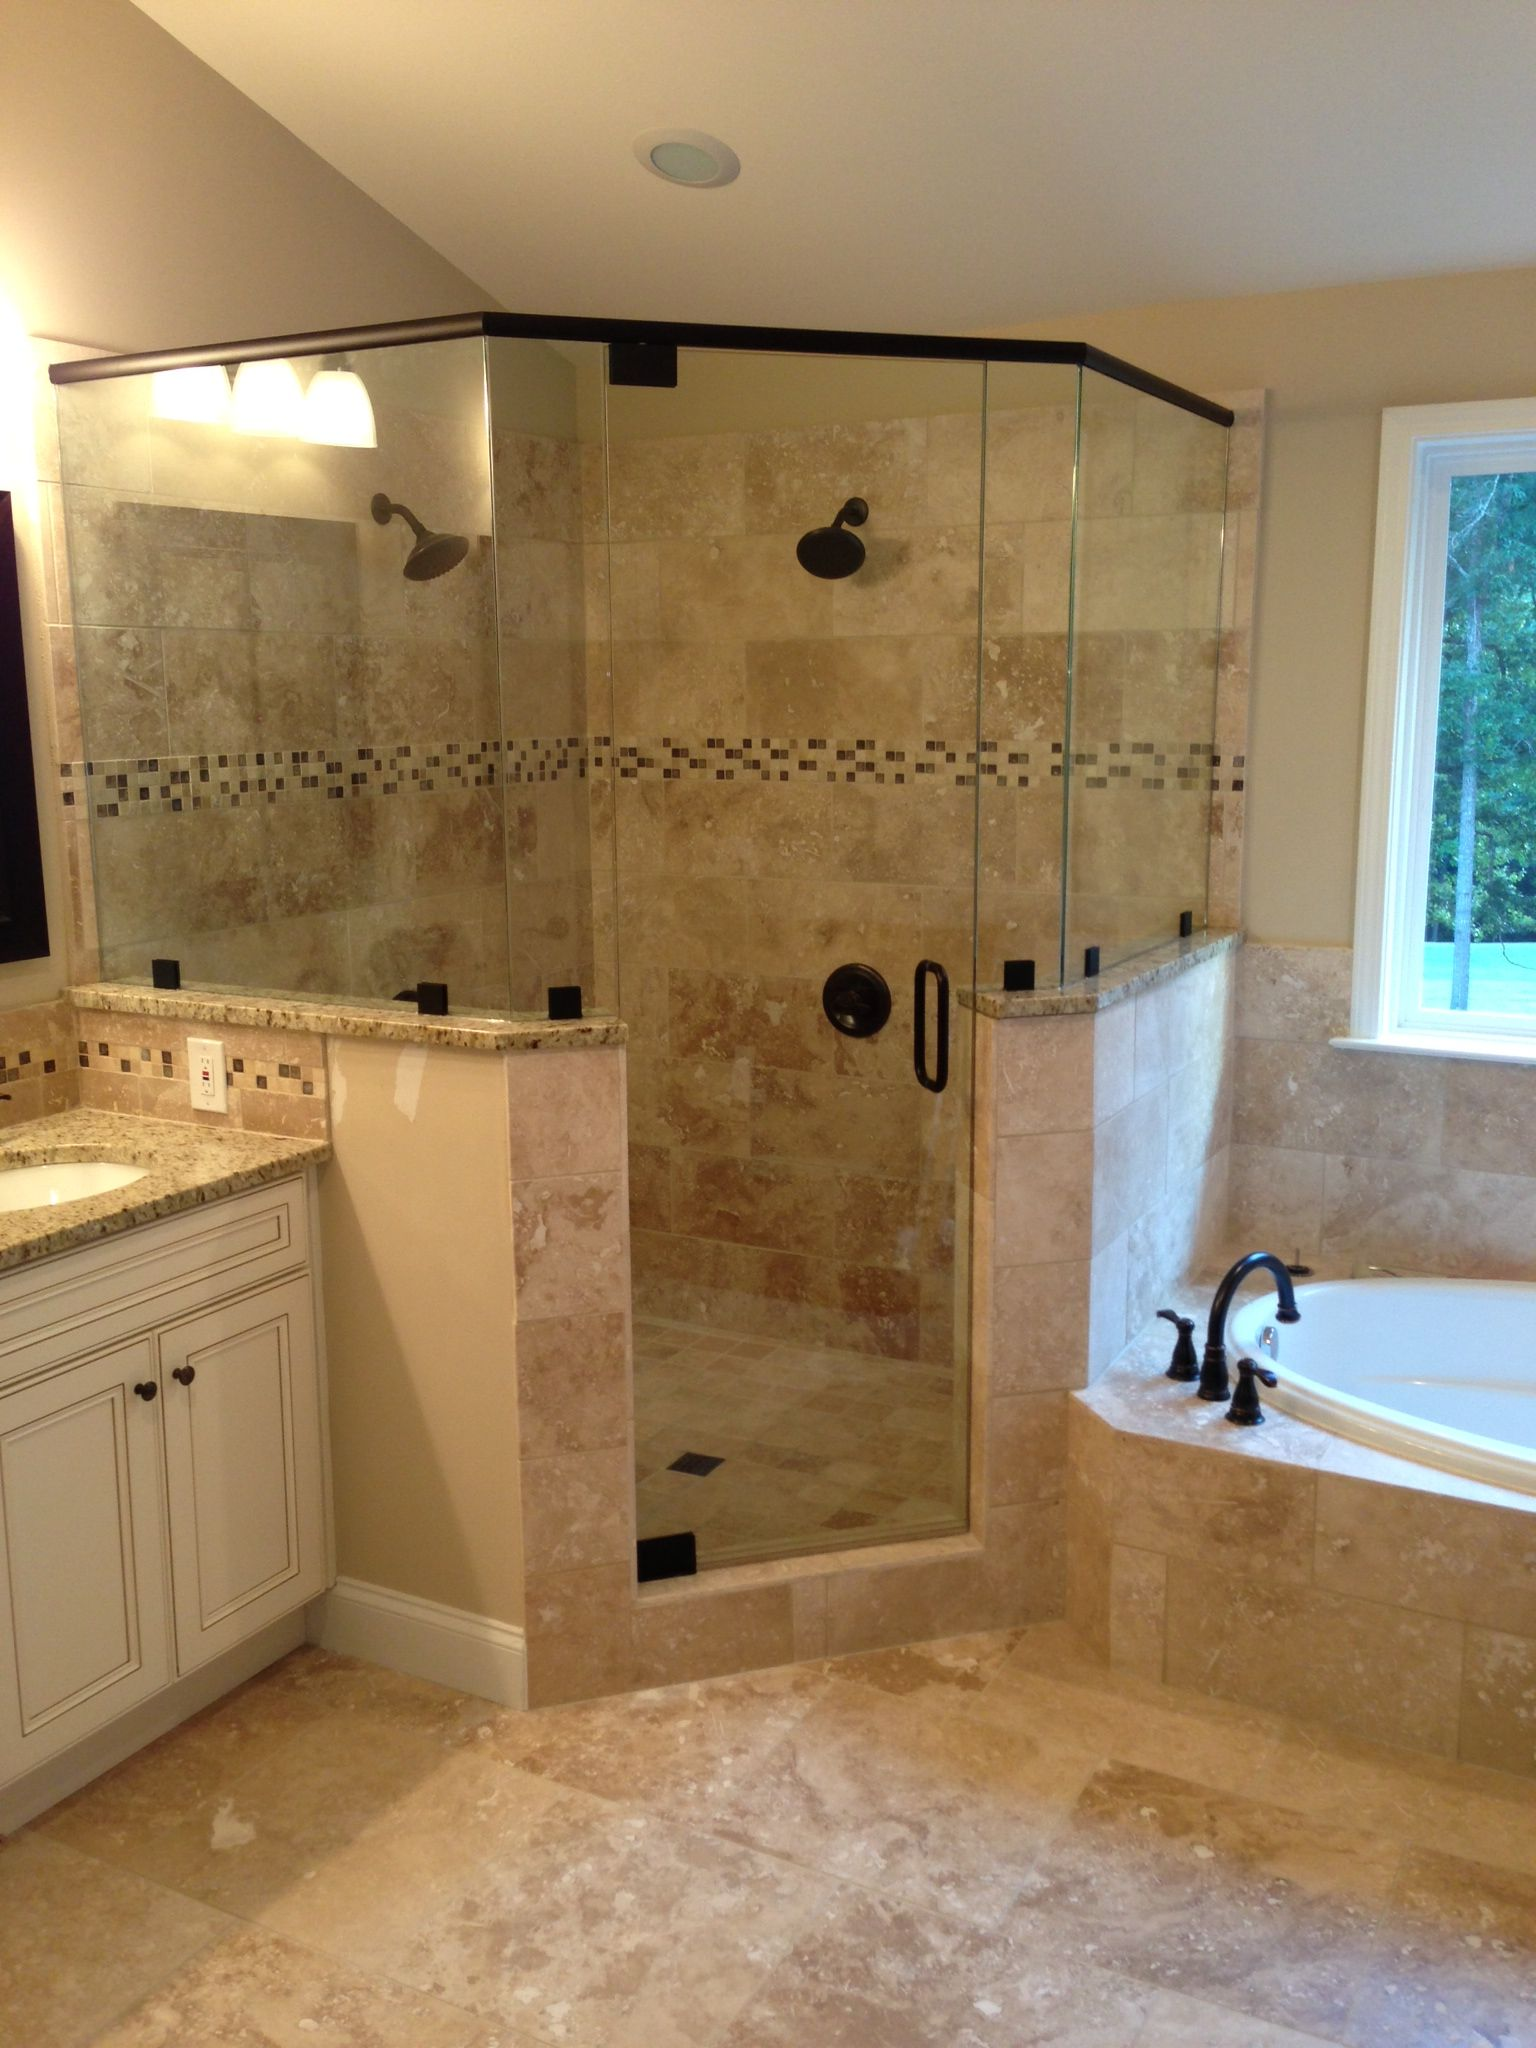 Bathroom Remodel Corner Shower frameless corner glass shower. dual shower heads. garden tub